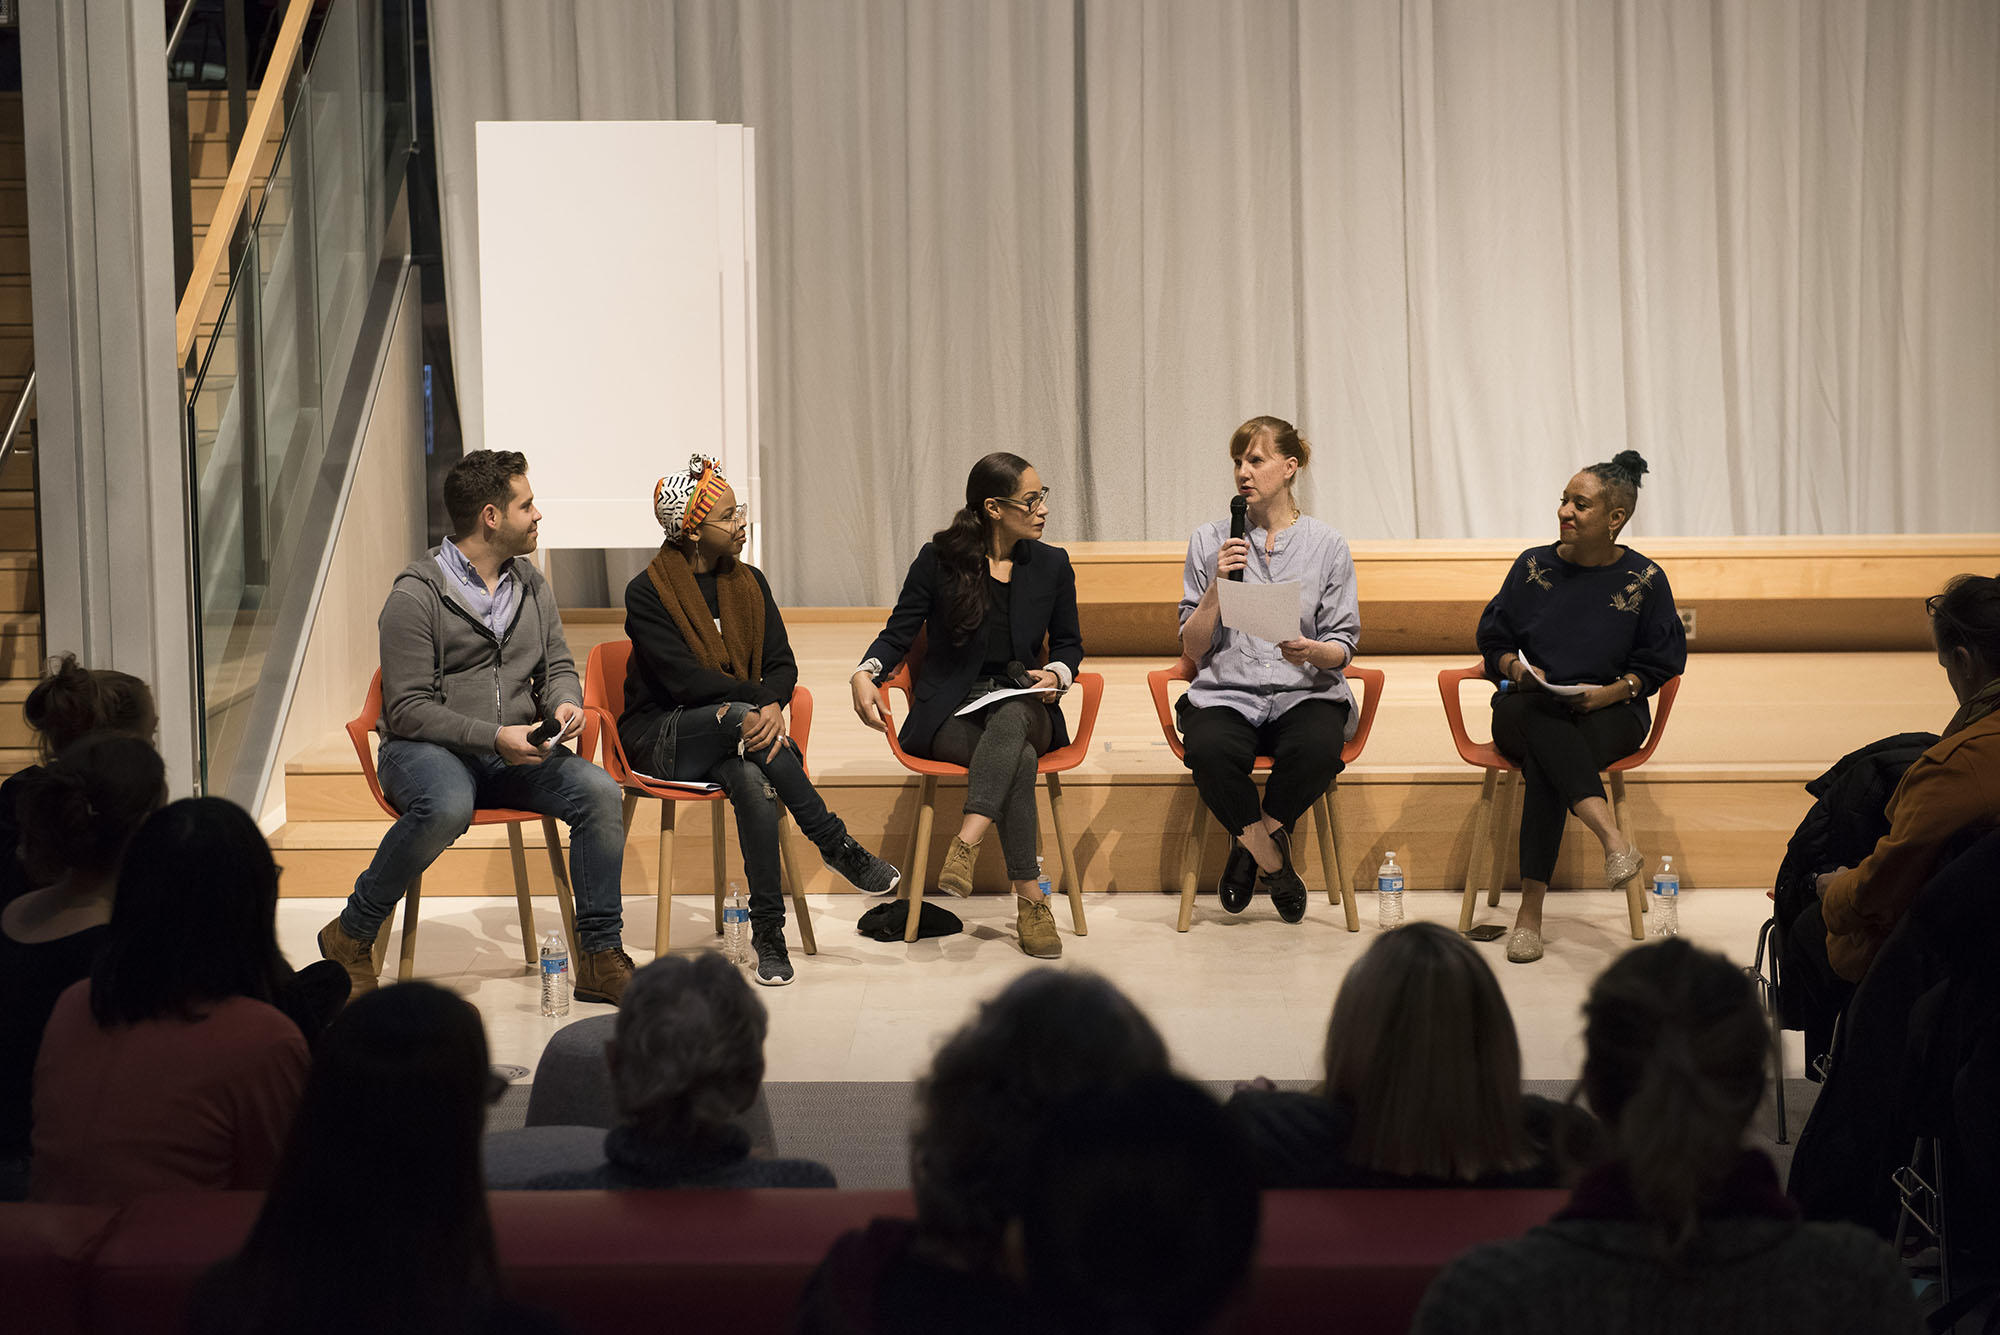 Five diverse panelists sit in a half circle on a stage with microphones in front of a full audience.